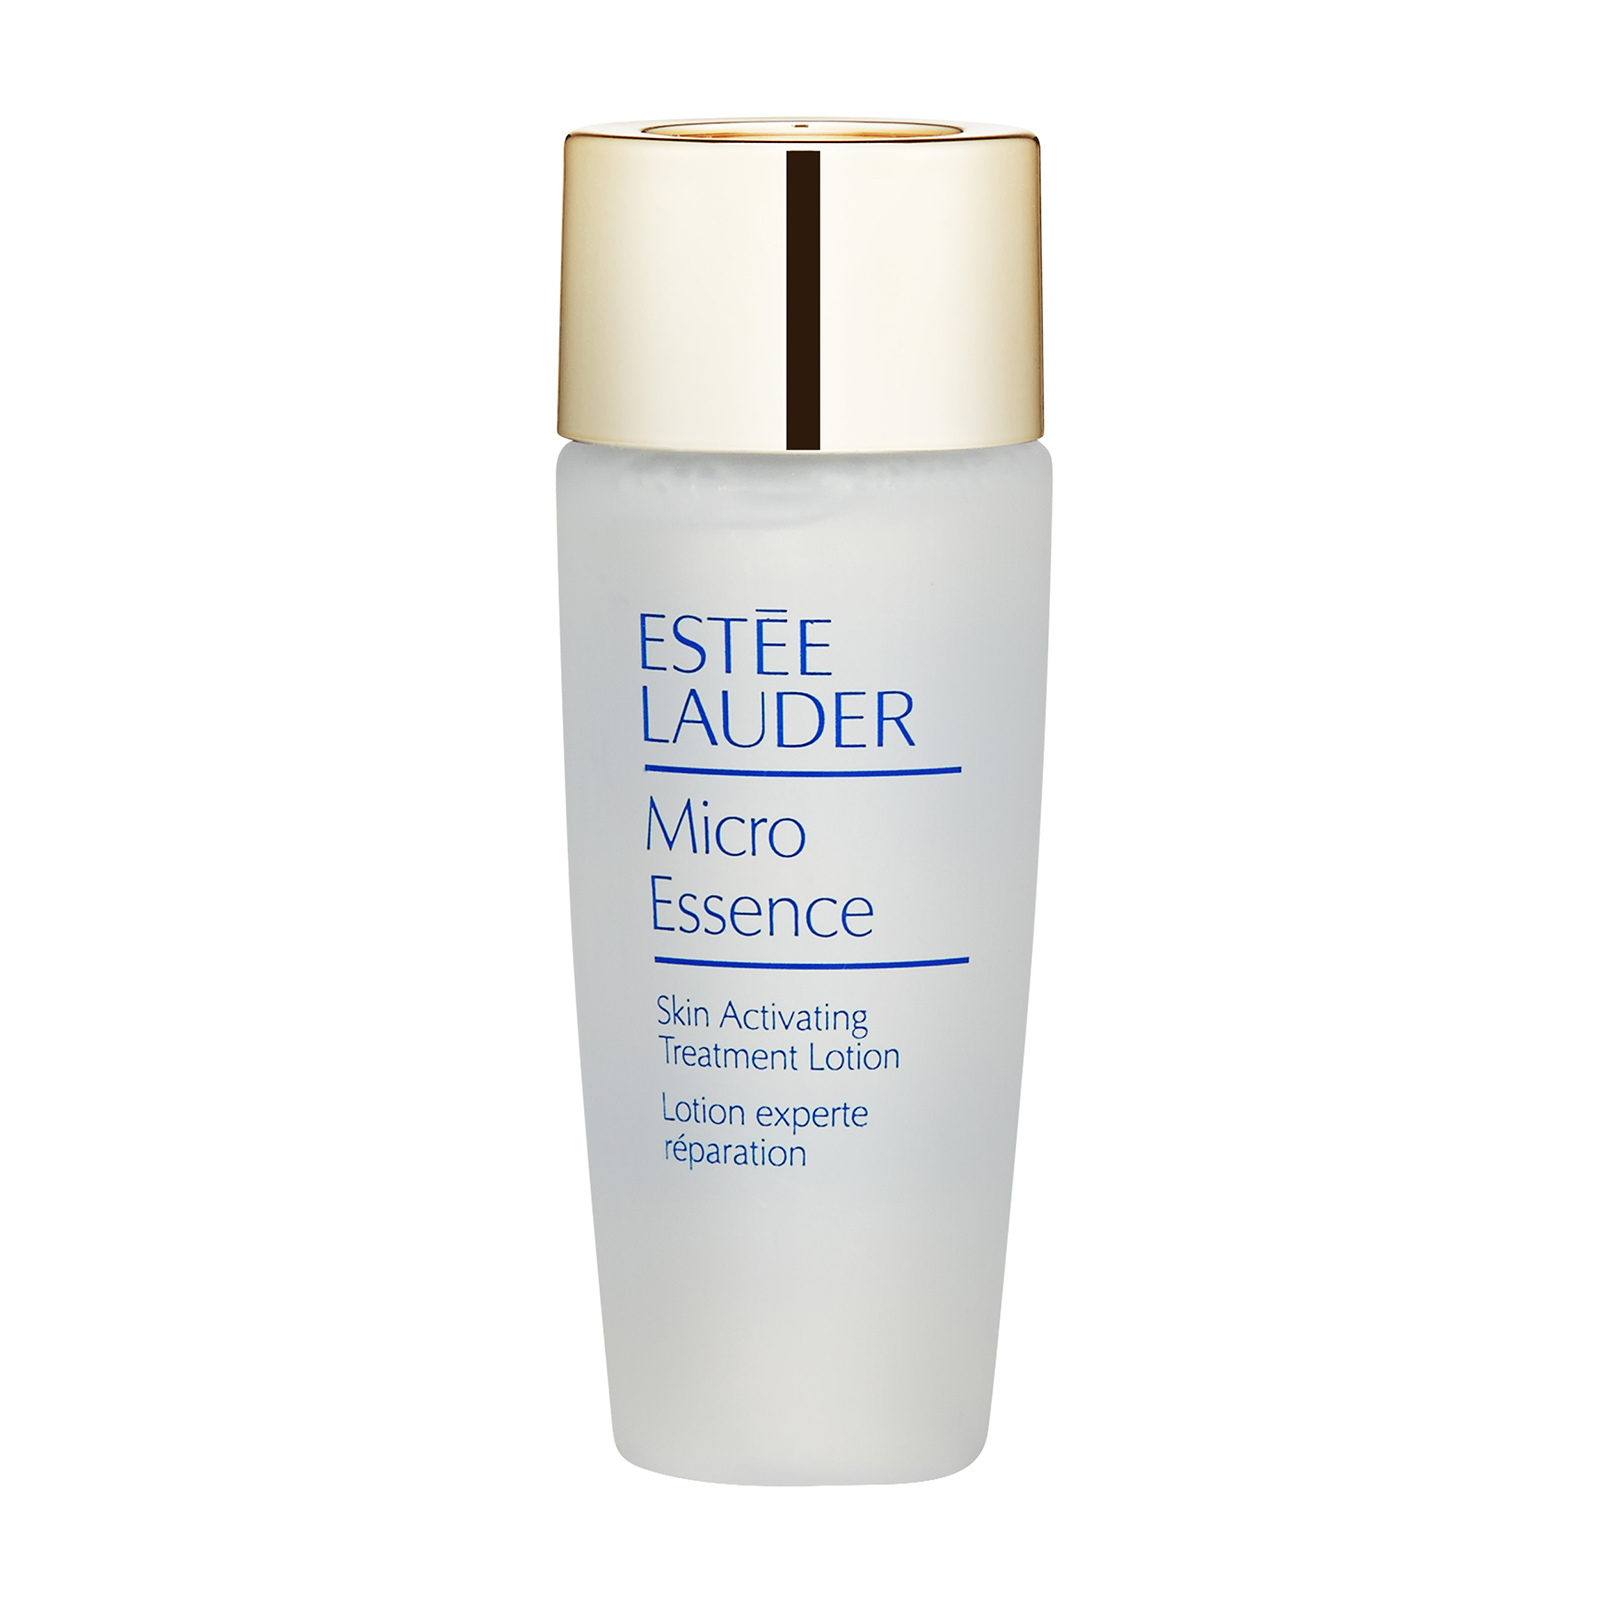 Estée Lauder  Micro Essence Skin Activating Treatment Lotion (For All Skin Types)  1oz, 30ml (sample/ 試用裝)